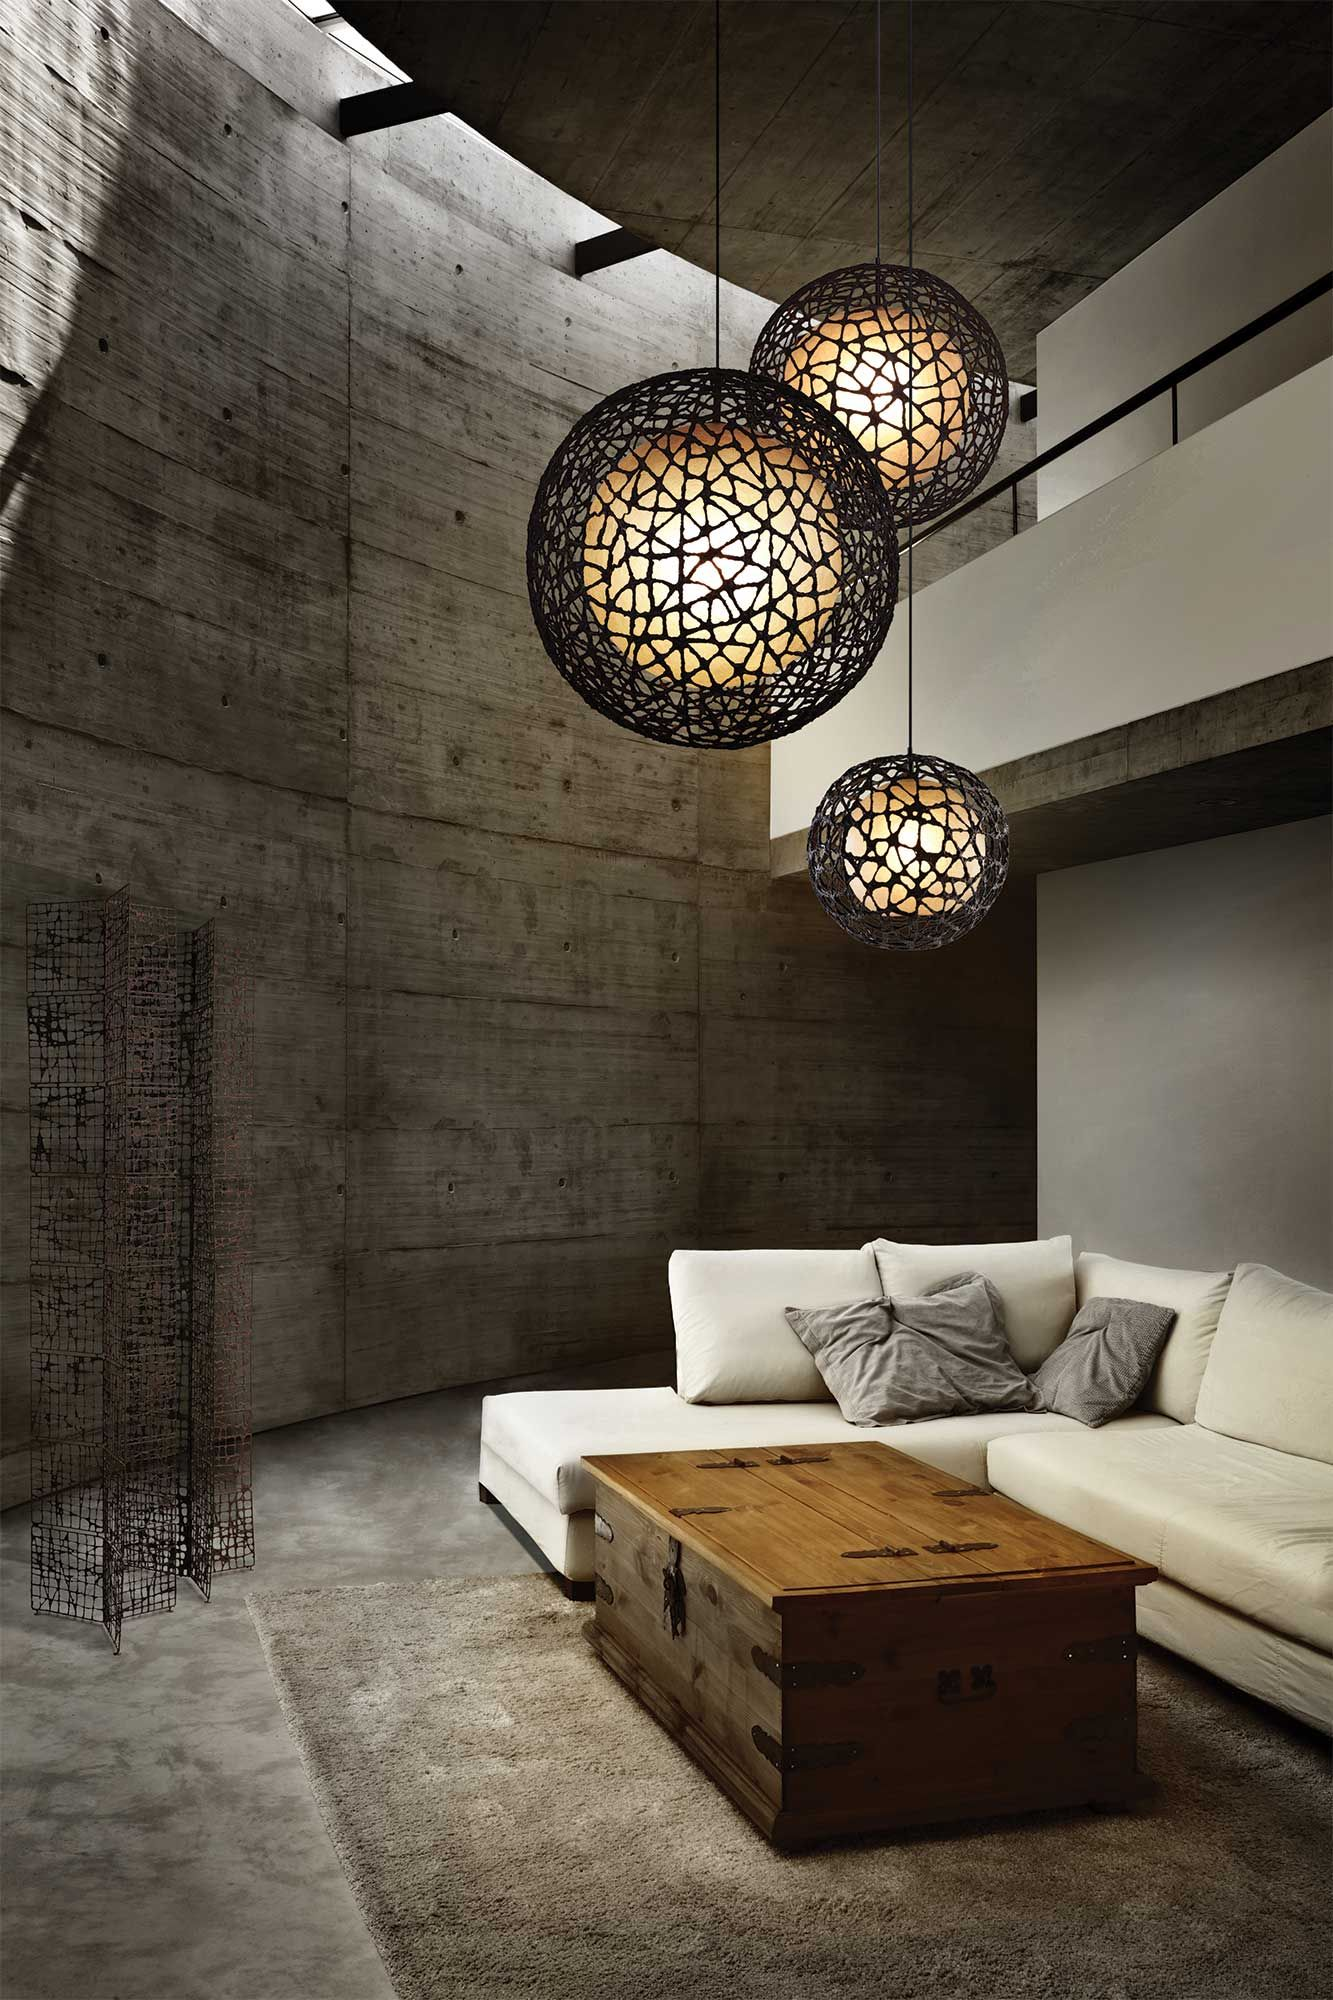 hanging pendant light living room unusual mirrors for rooms c u me round architects pinterest lighting lamp design by hive at lightology